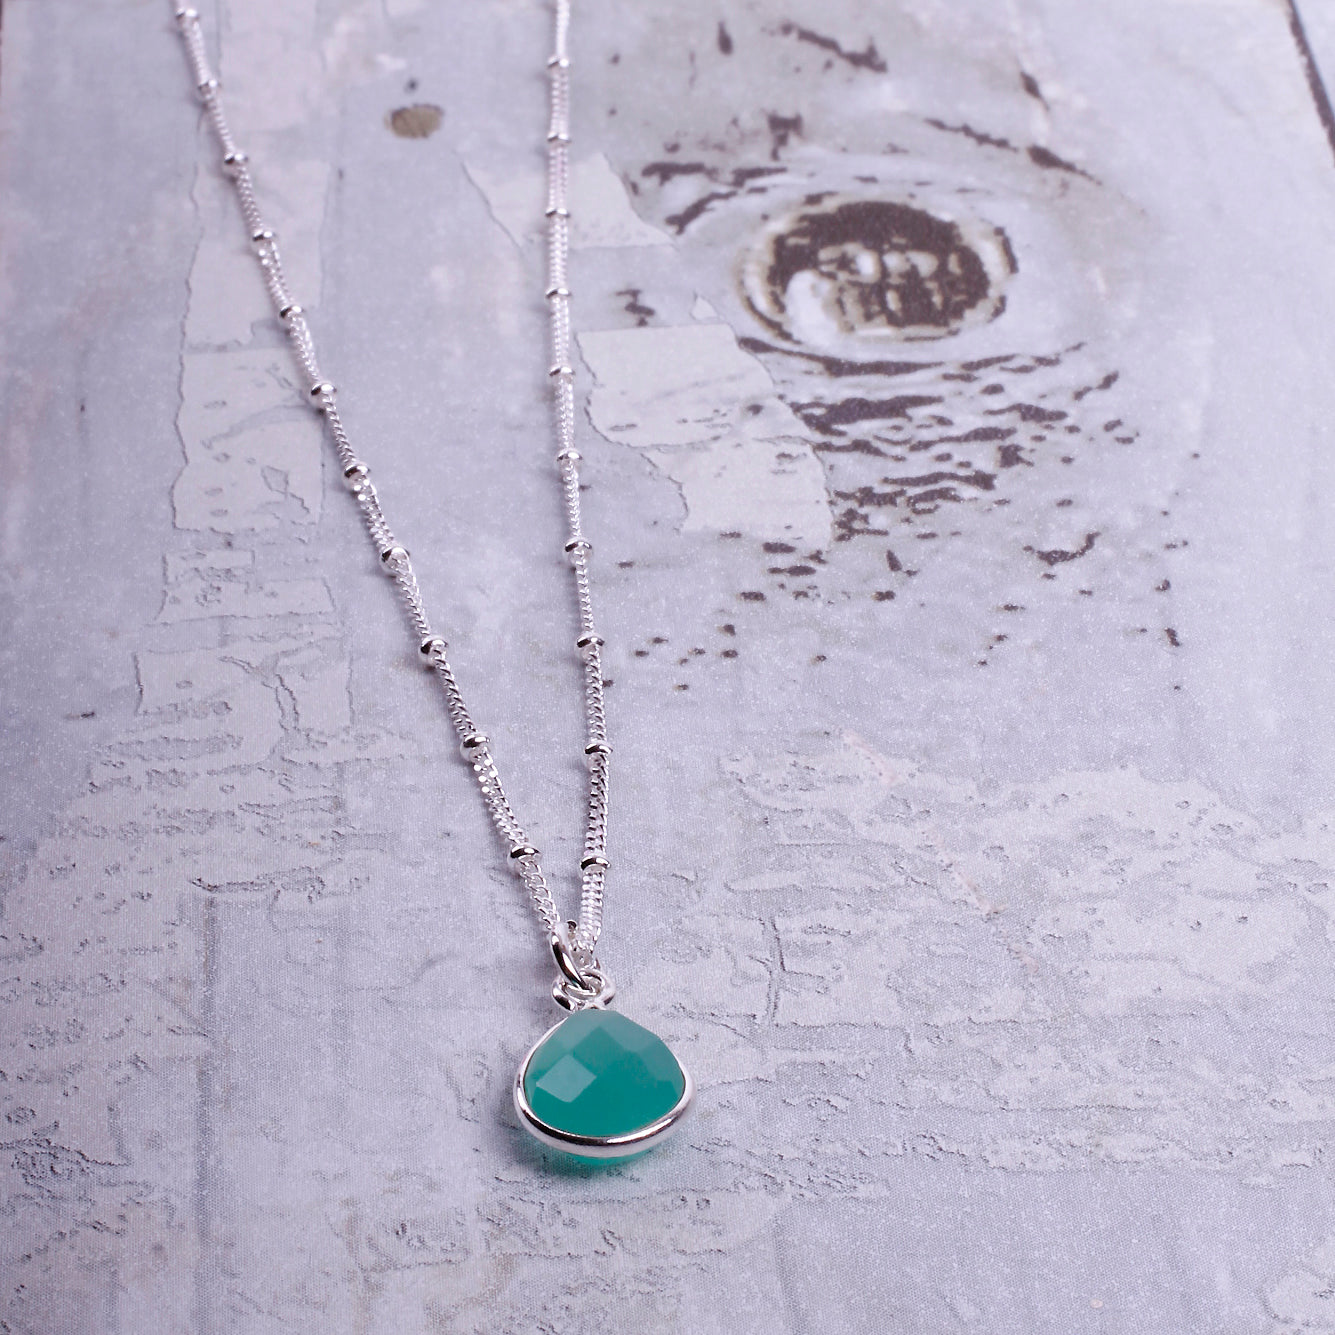 JOY NECKLACE - Elizabeth Burry Design